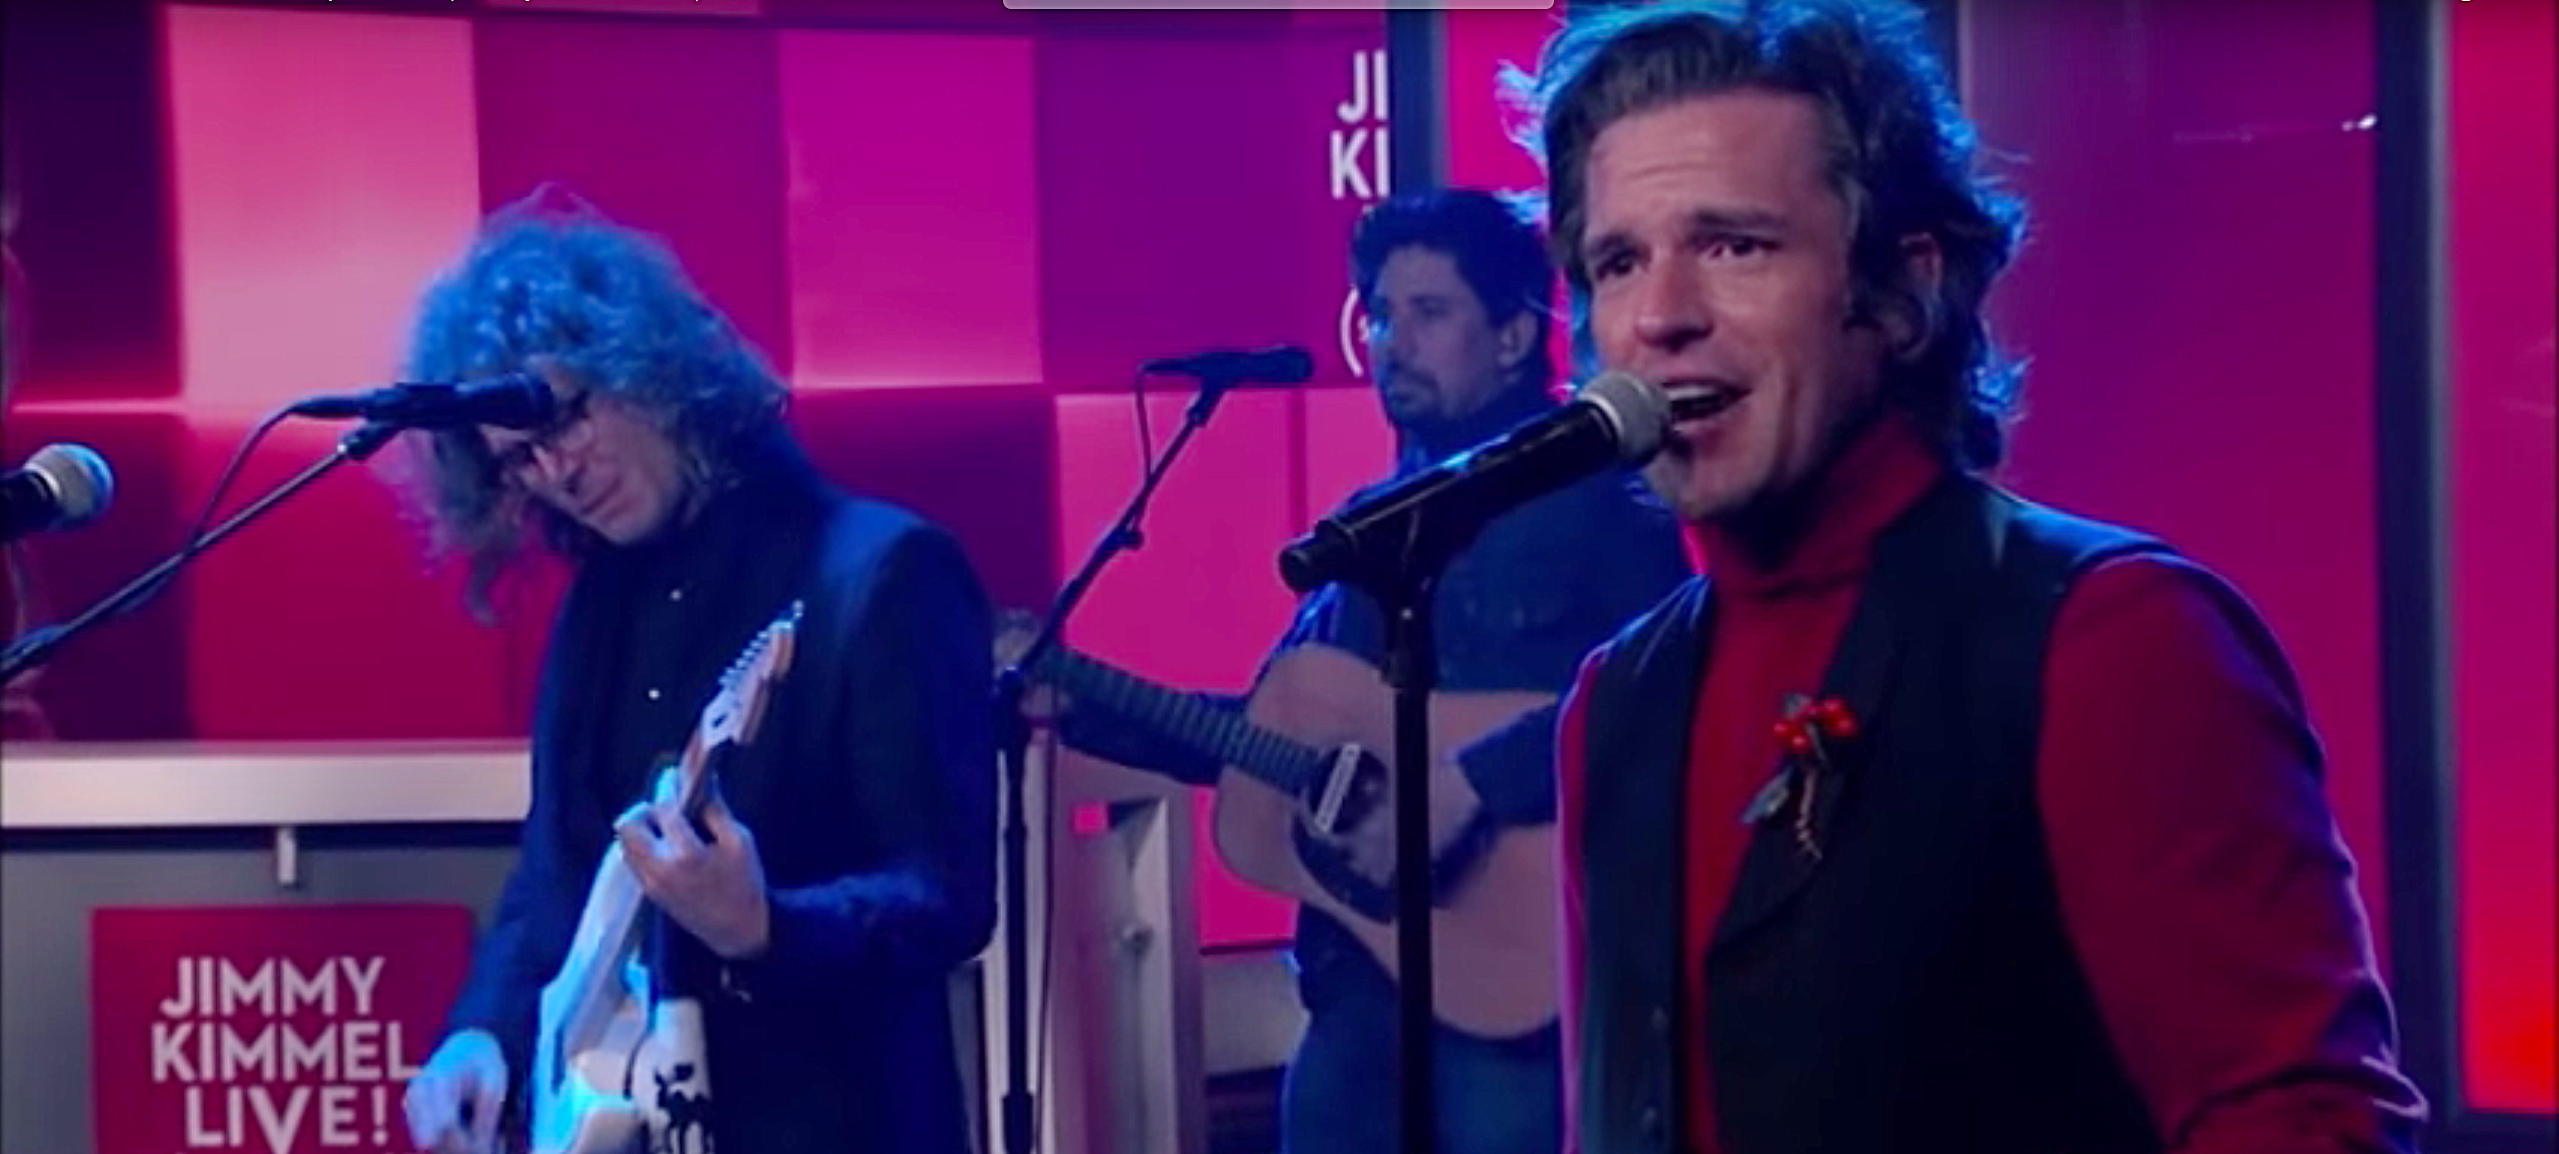 The Killers, Kimmel Re-Gift Holiday Classic \'Joel the Lump of Coal ...